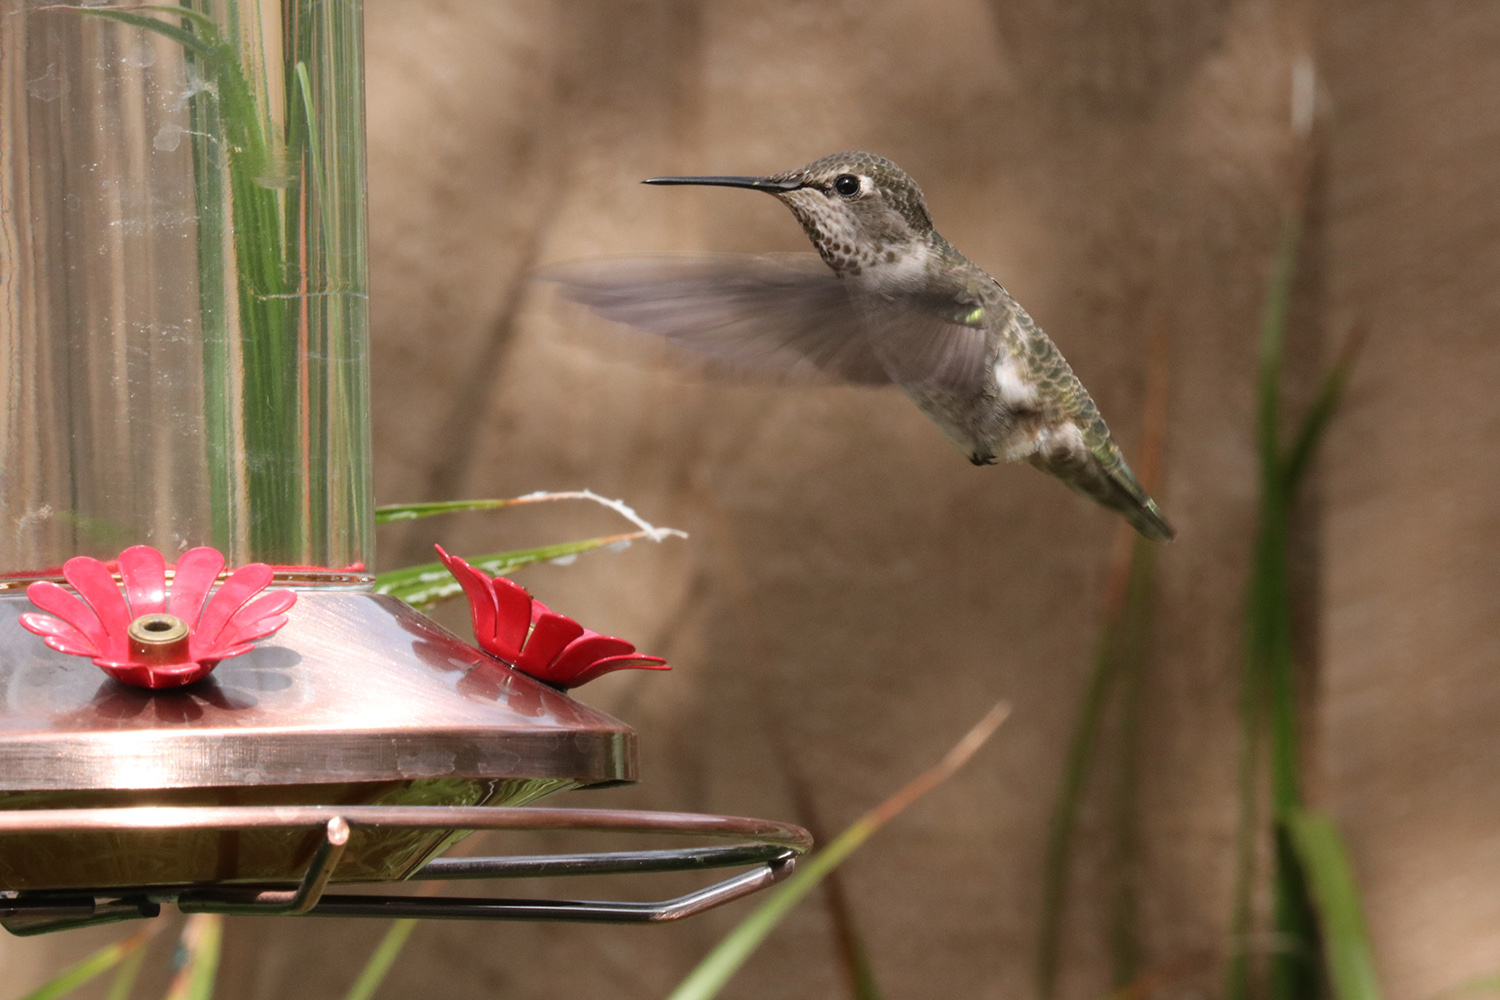 A ruby-throated hummingbird visits a backyard feeder in fall. Photo by Shutterstock.